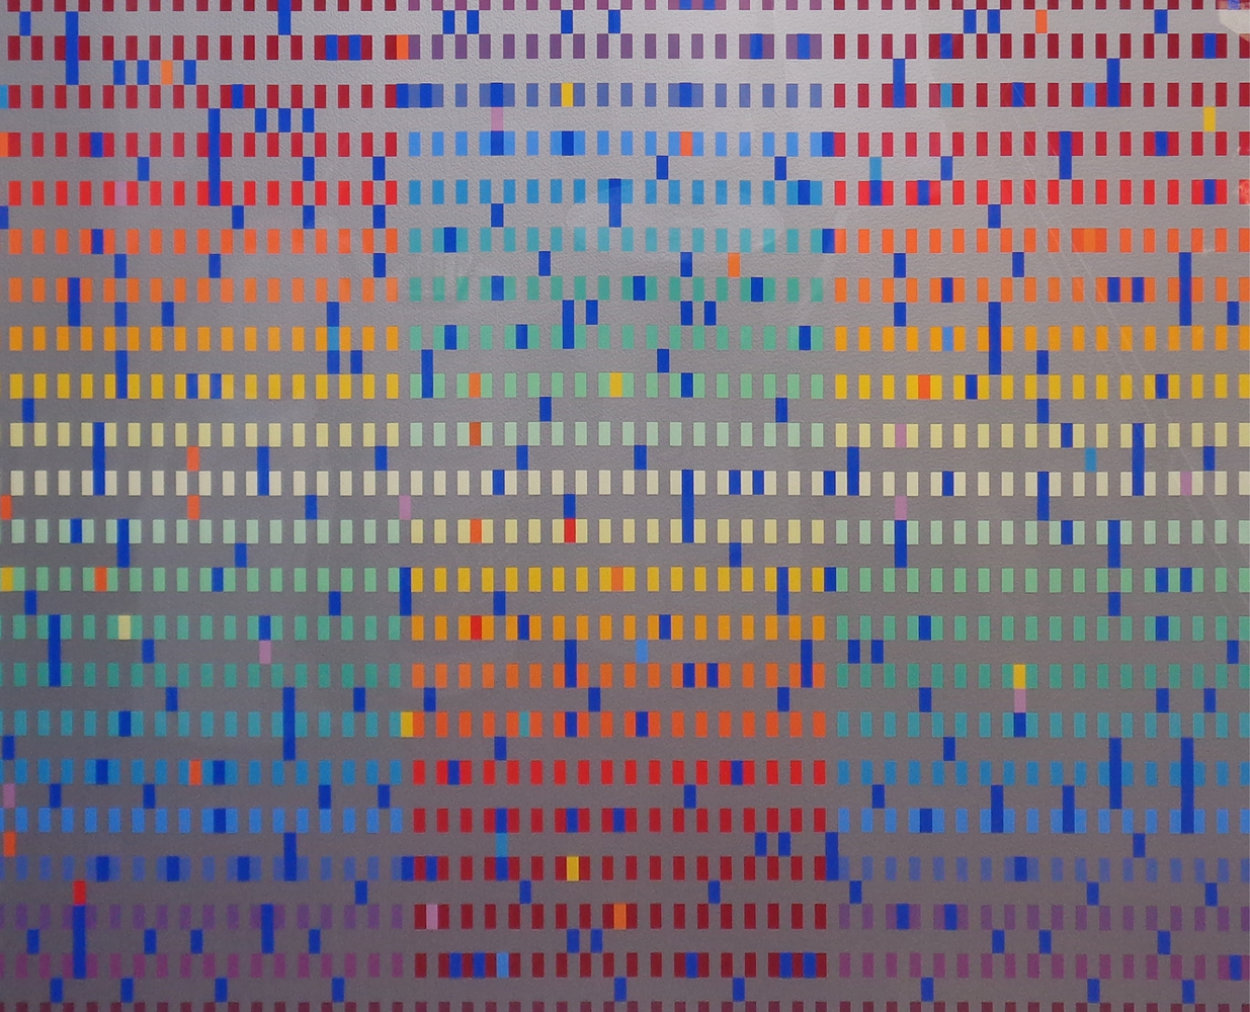 Untitled Agamograph 1980 Sculpture by Yaacov Agam